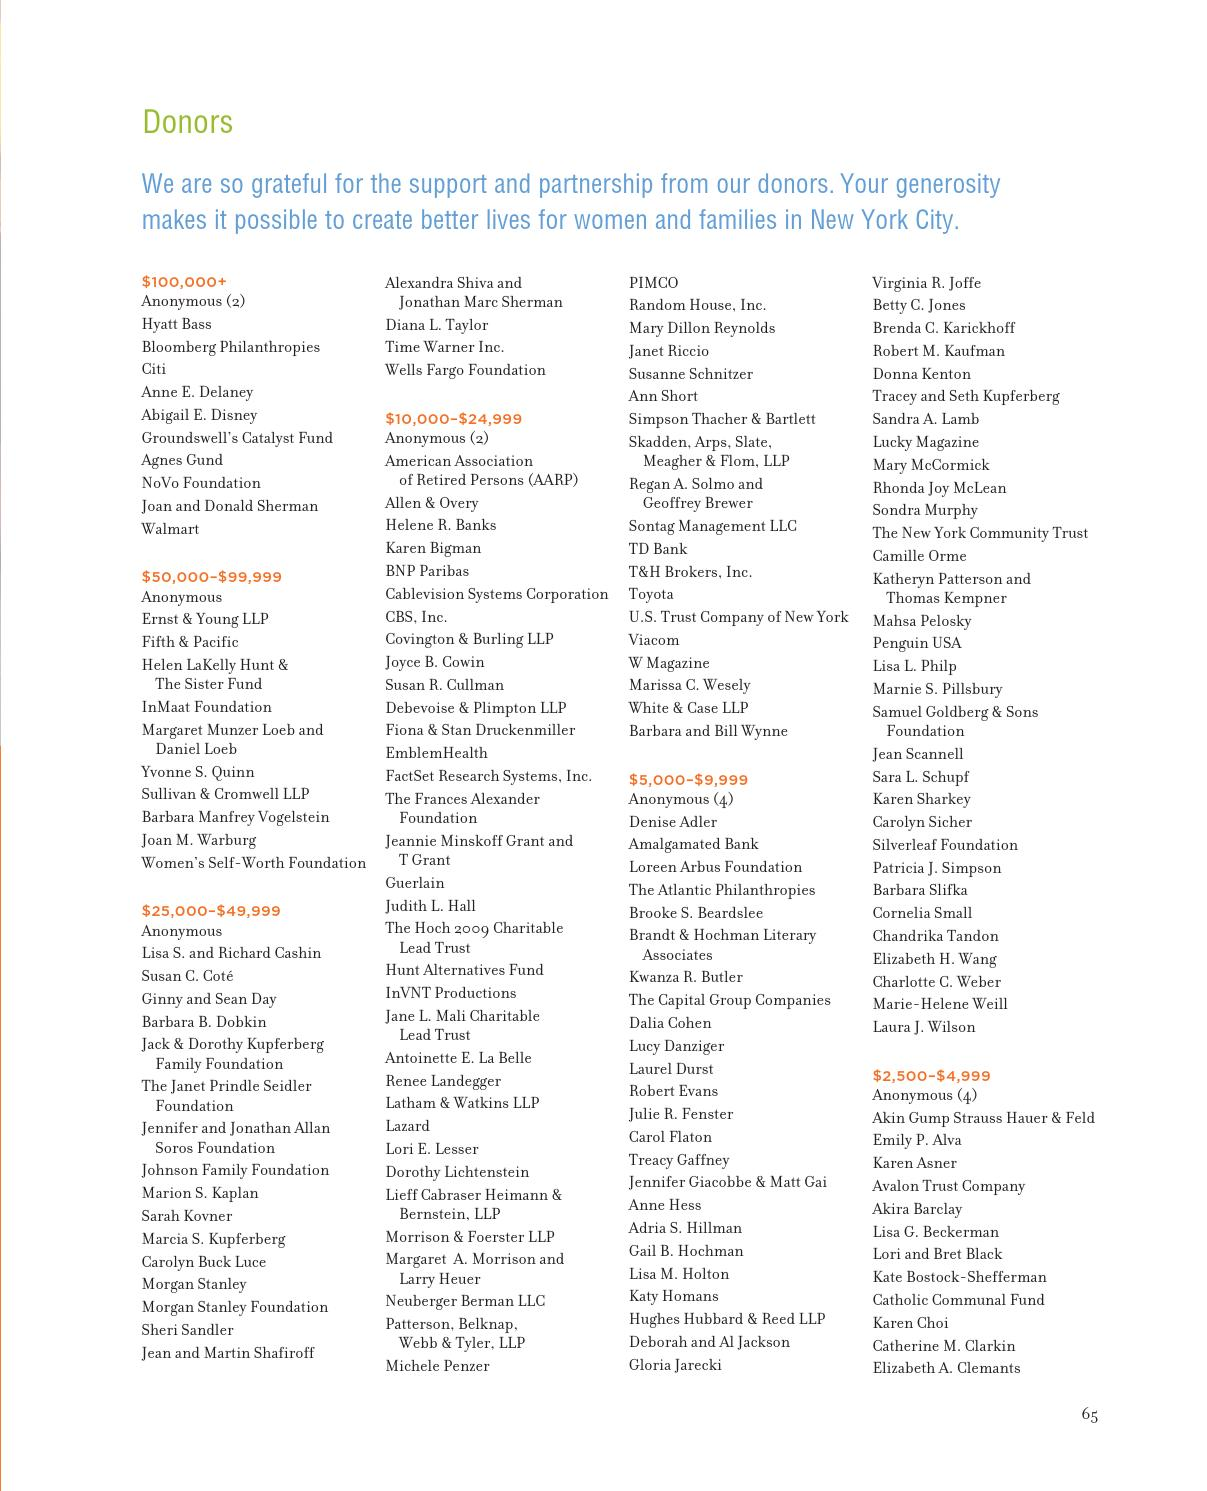 The New York Women's Foundation's 2012 Annual Report by The New York